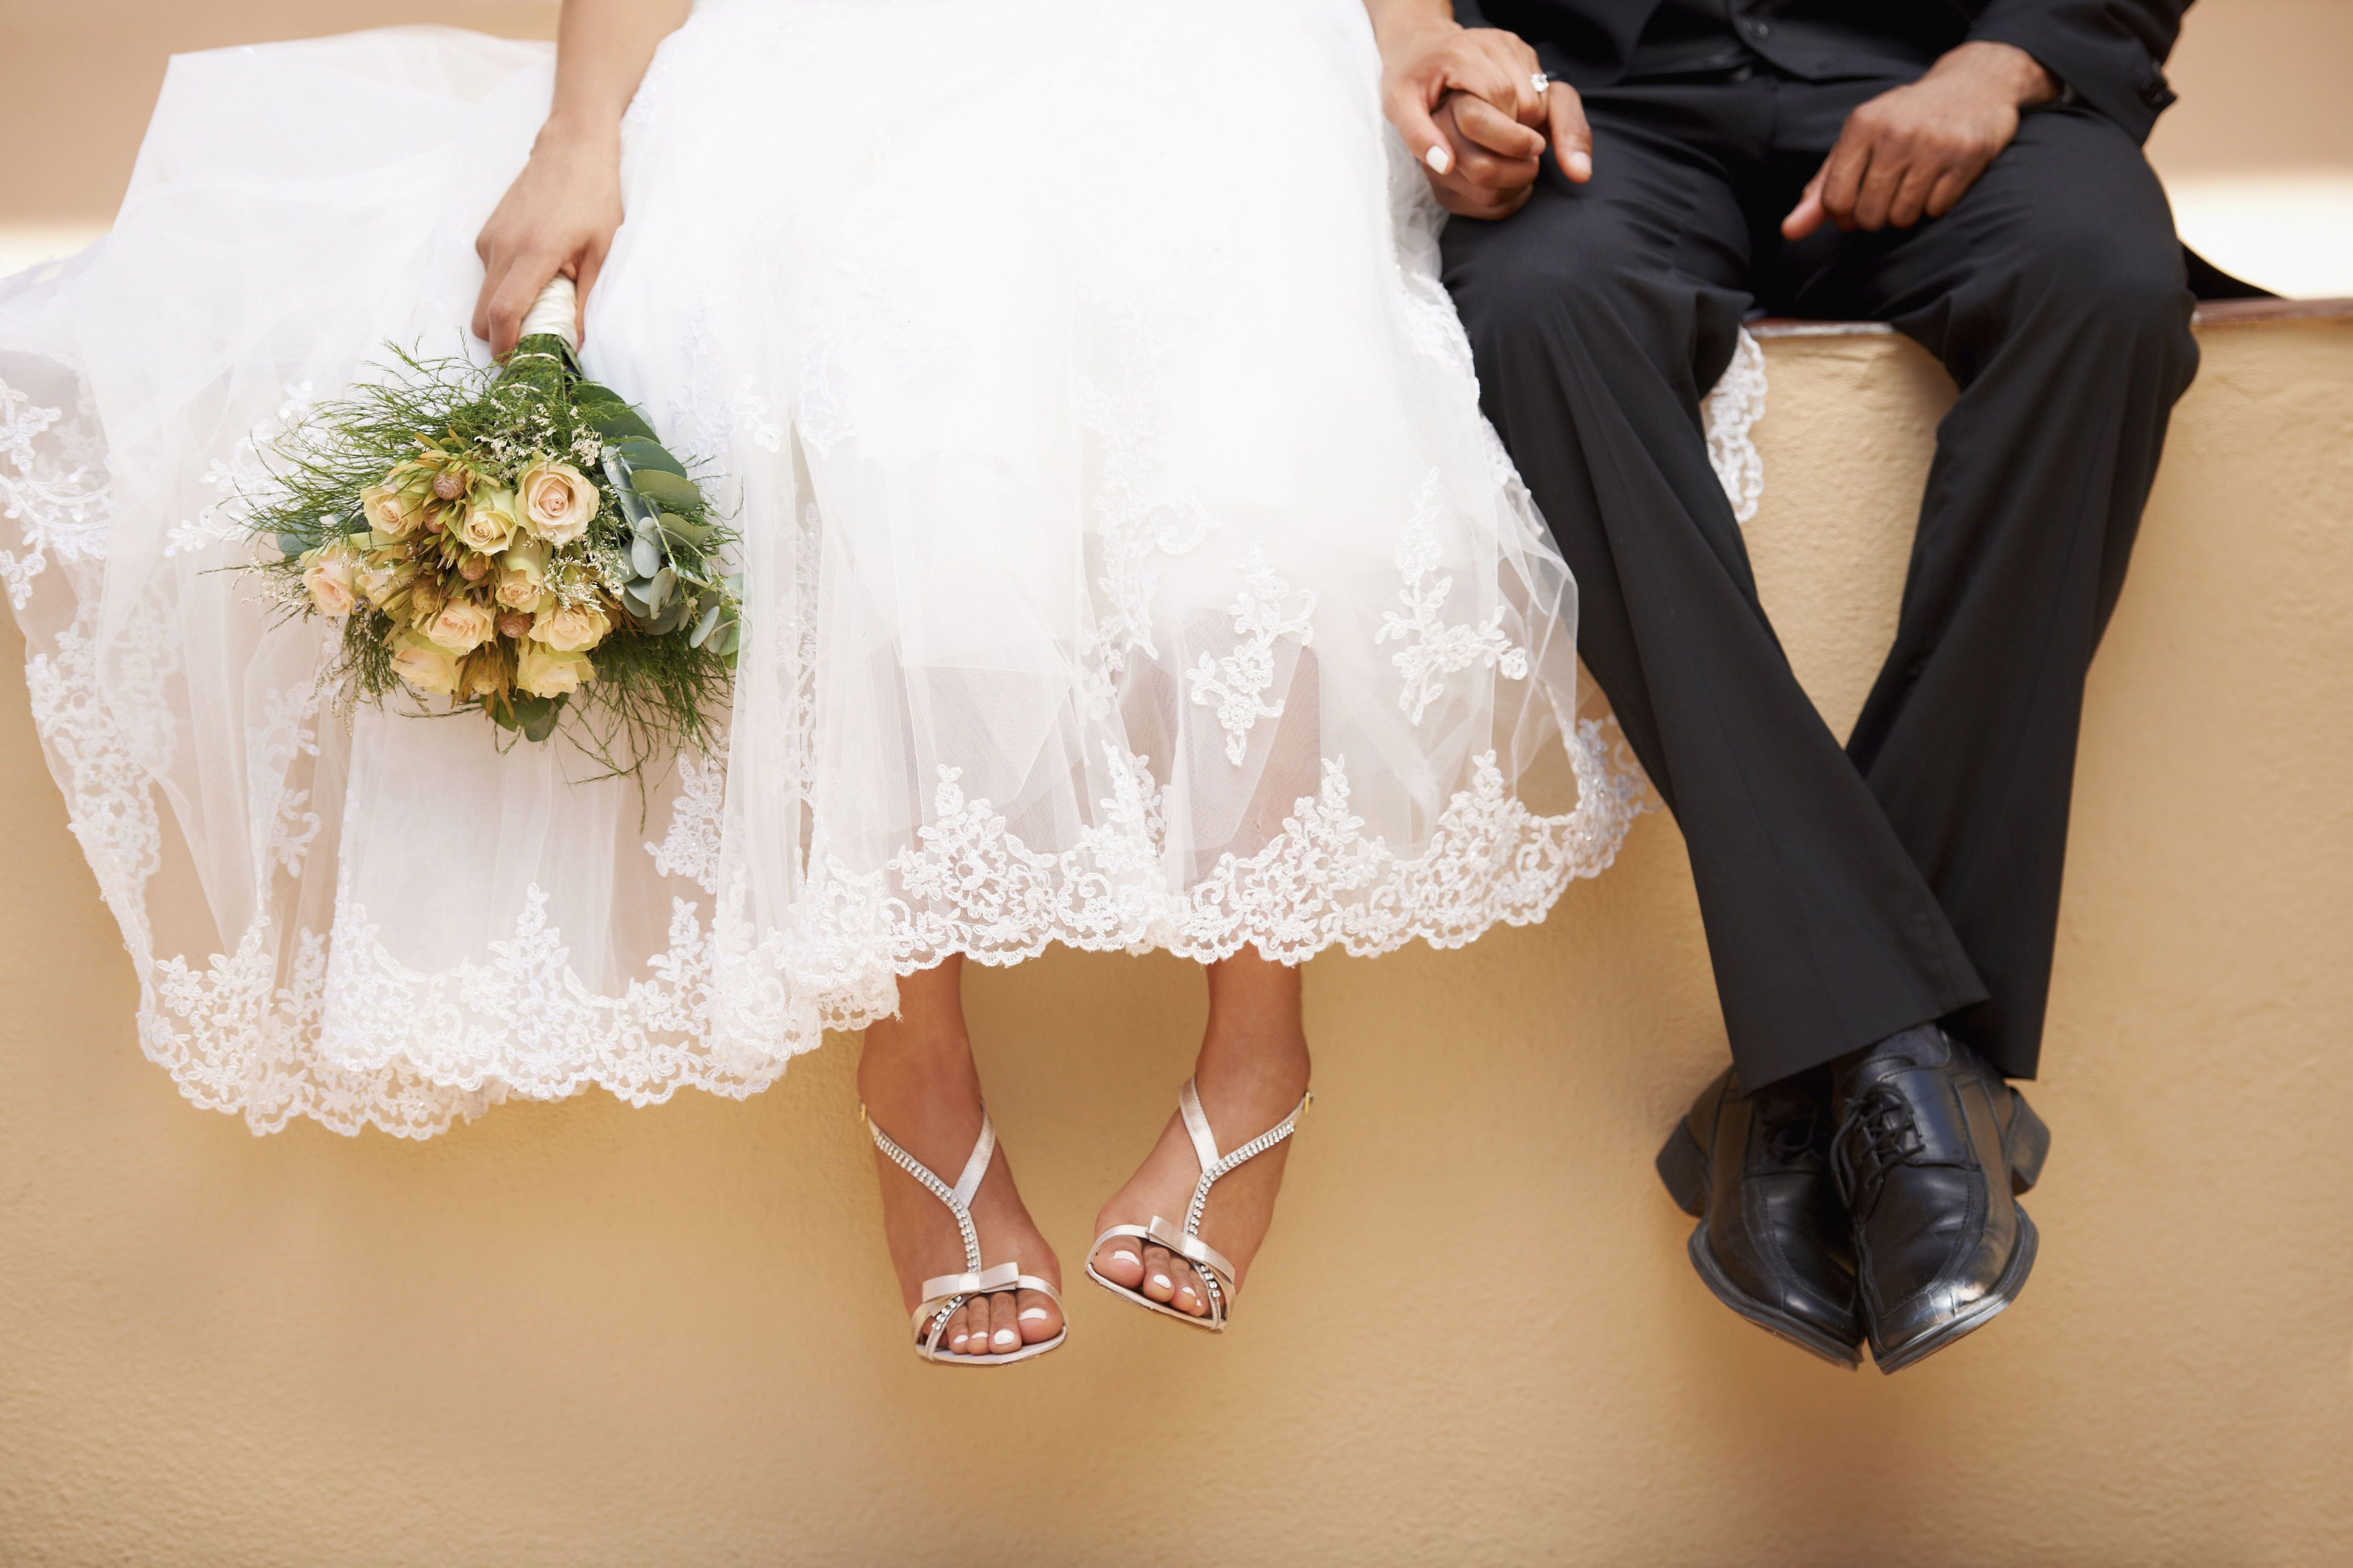 The 4 Things I Had to Give Up to Save My Marriage